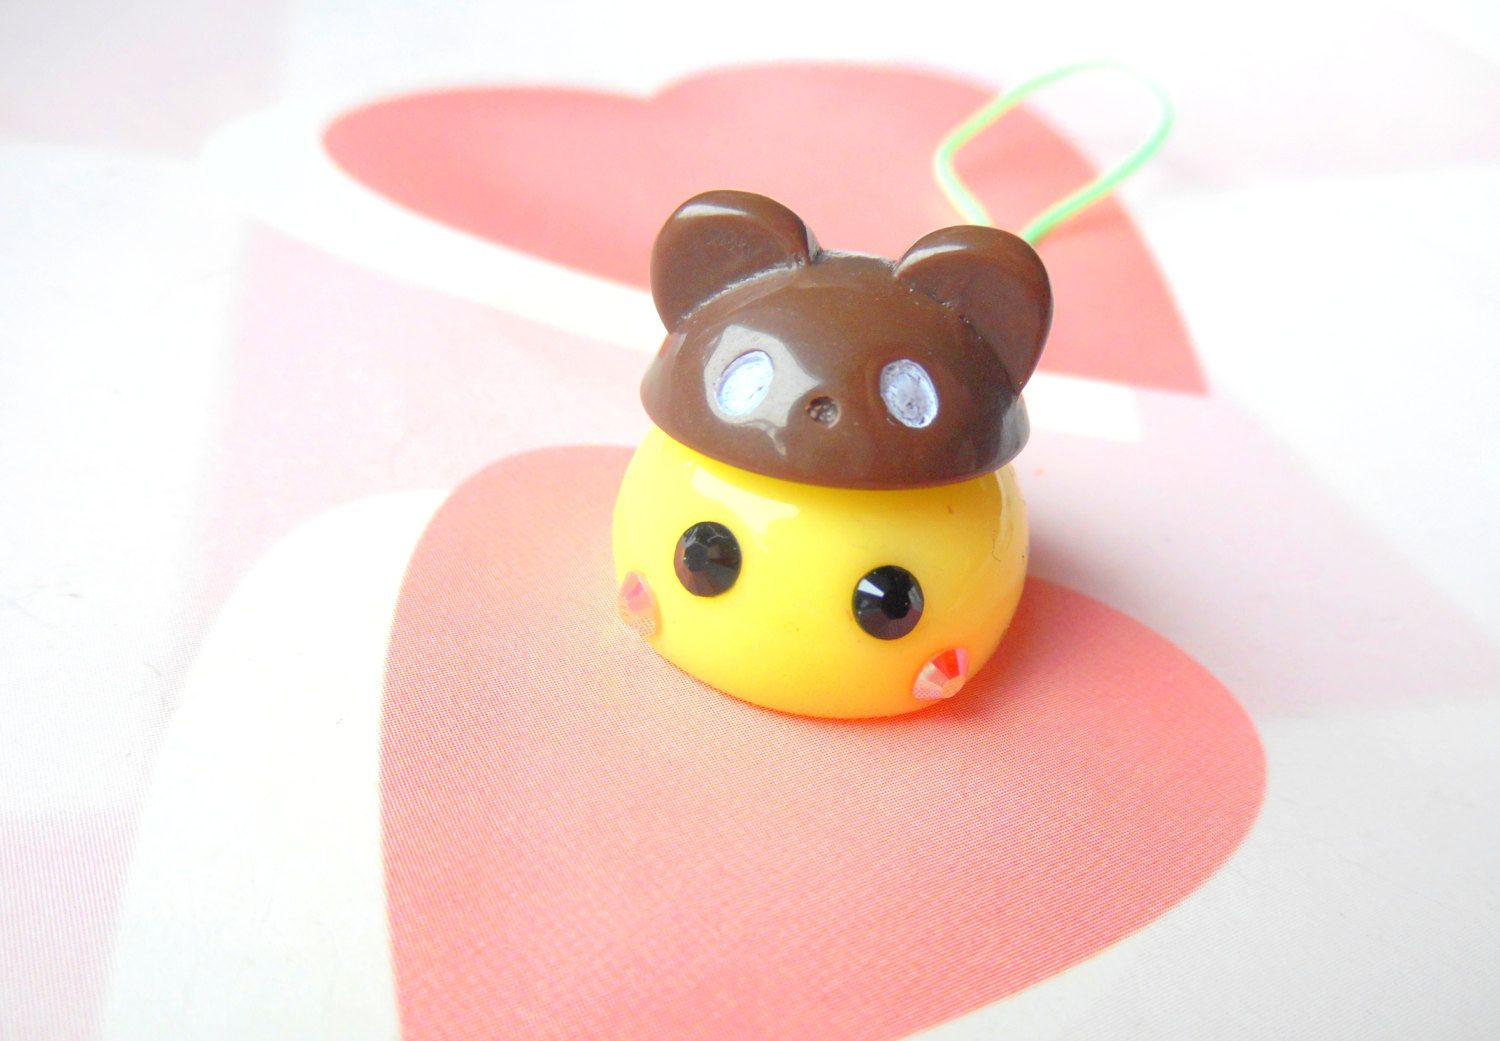 Bear Hat Cosplay Yellow Hoppe Chan, Tamagotchi Charm, Kawaii Phone Charm, Cute Dust Plug, Nintendo 3DS, PS Vita, Anime Lovers, Kawaii Animal by CreaBia on Etsy